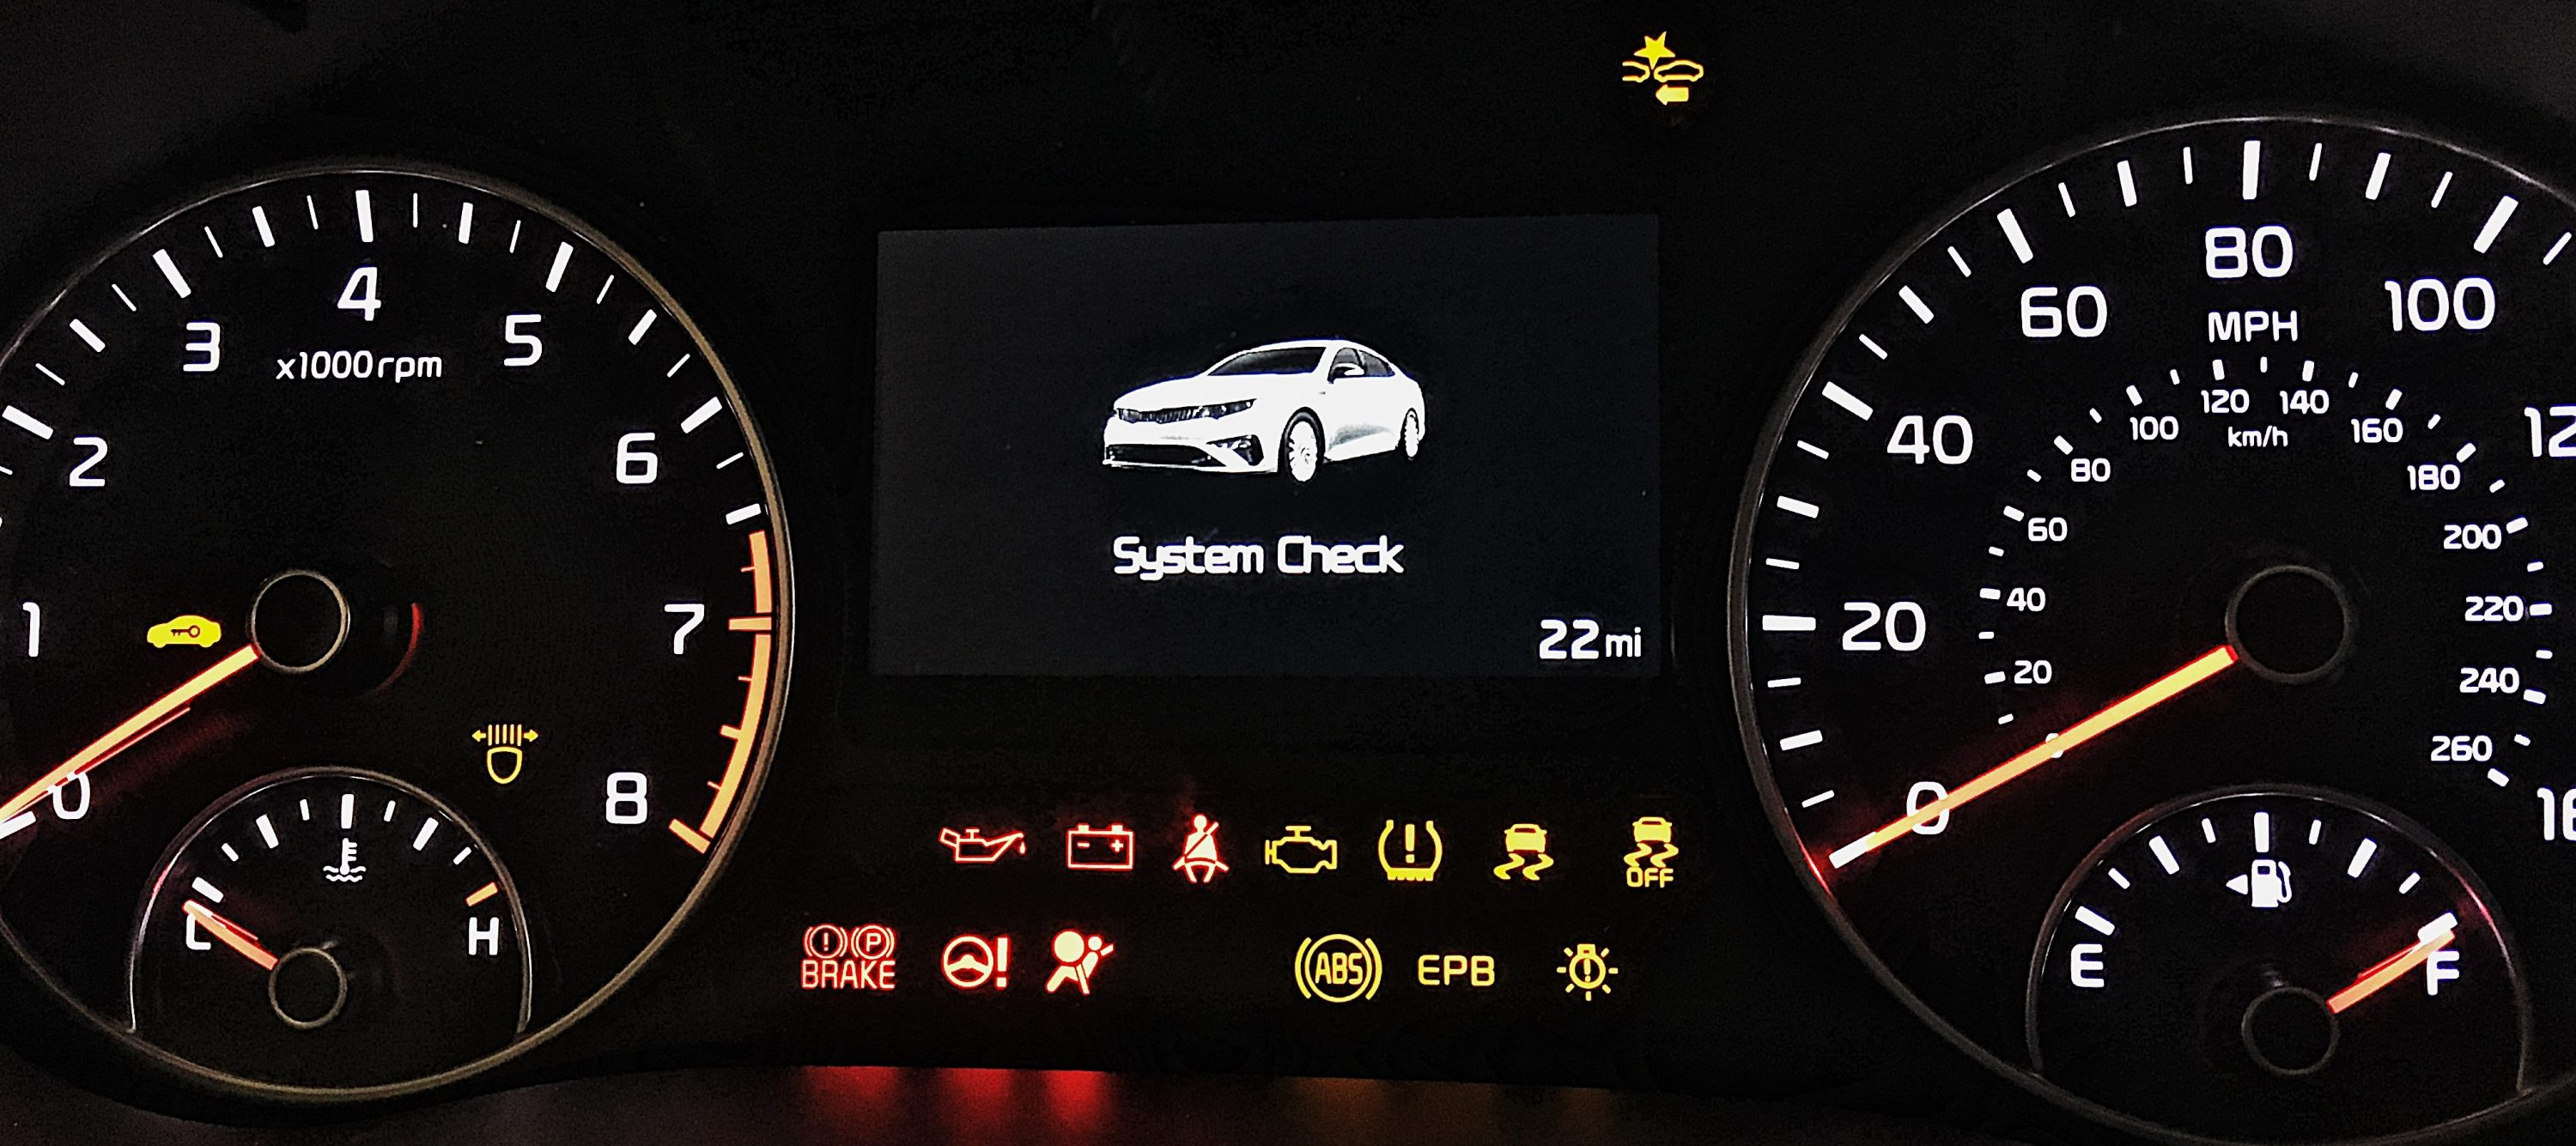 15 Car Dashboard Warning Lights: What do they mean? - Matt Blatt Kia